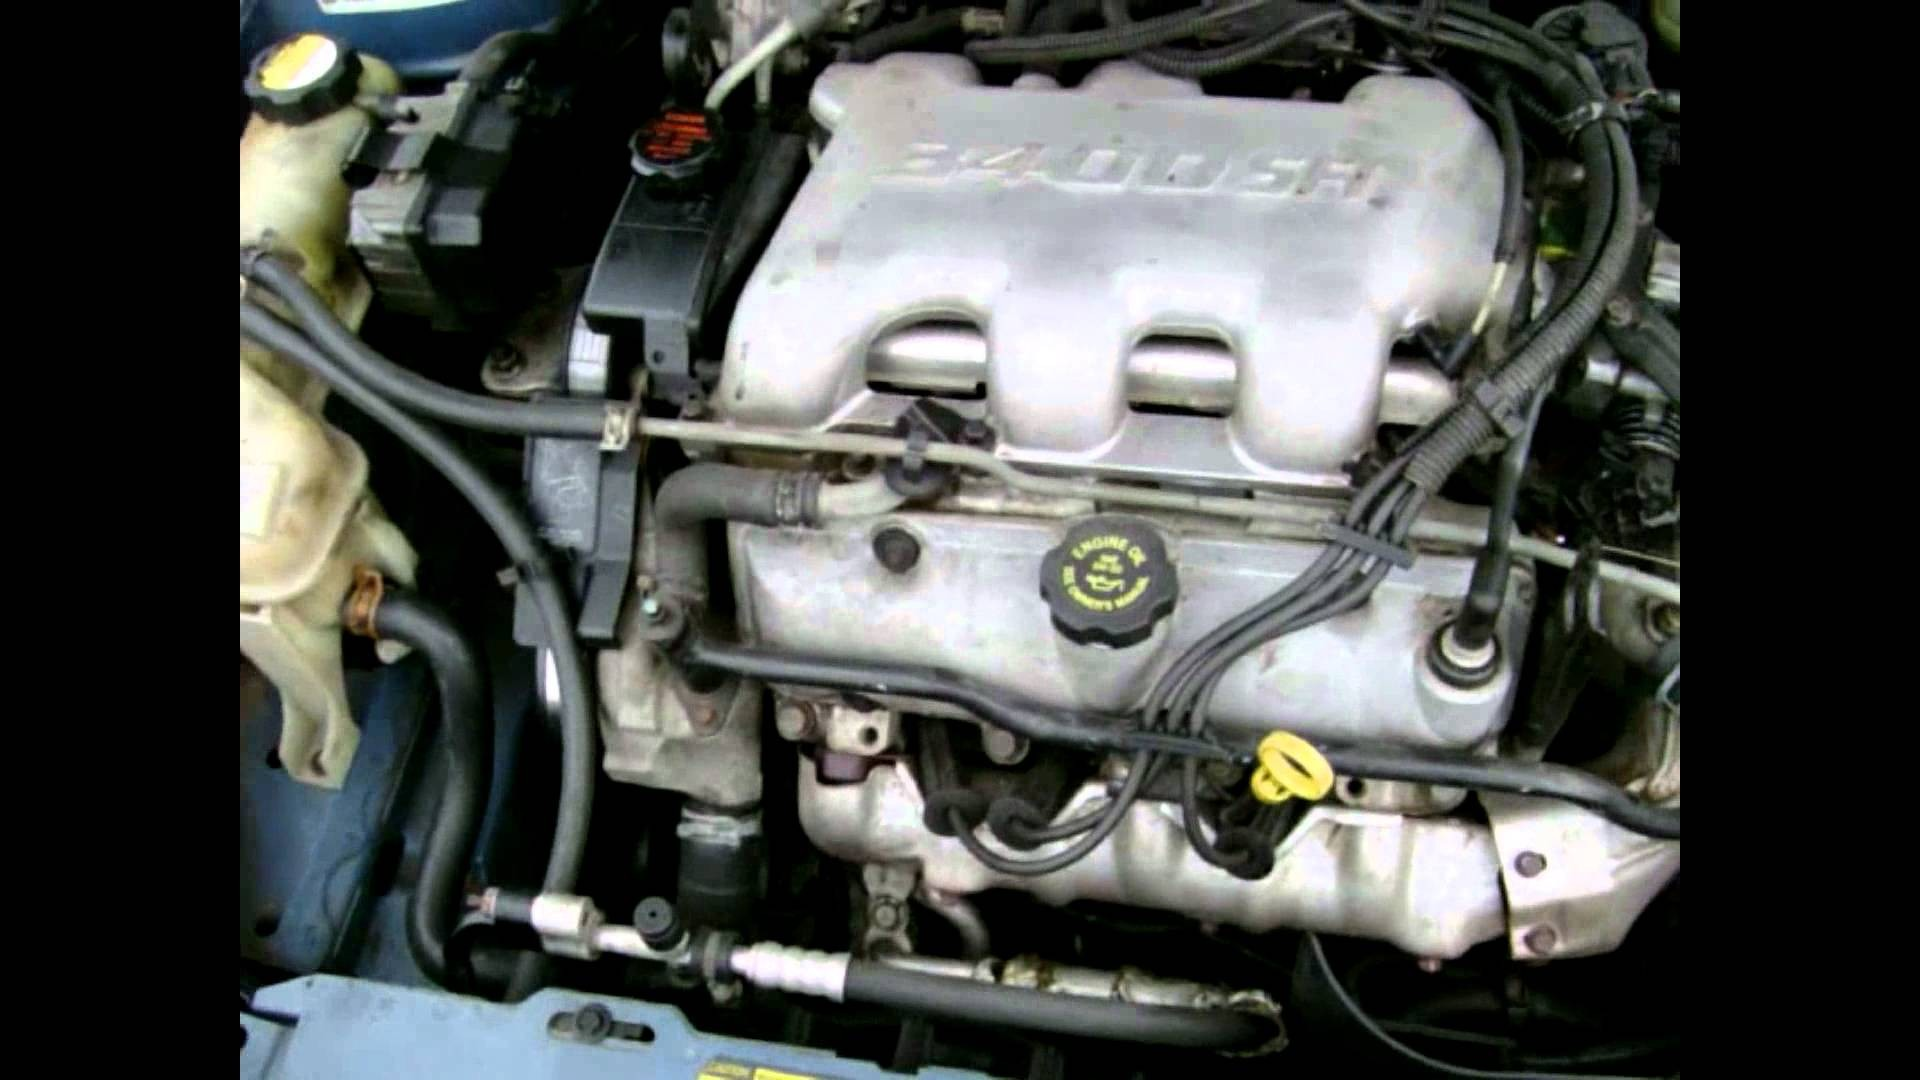 4l Engine Diagram 3 Wiring Library 2003 Saturn Ion Coil Pack Chevy Venture 3400 Gm 4 Liter Motor Explanation And Discussion Of